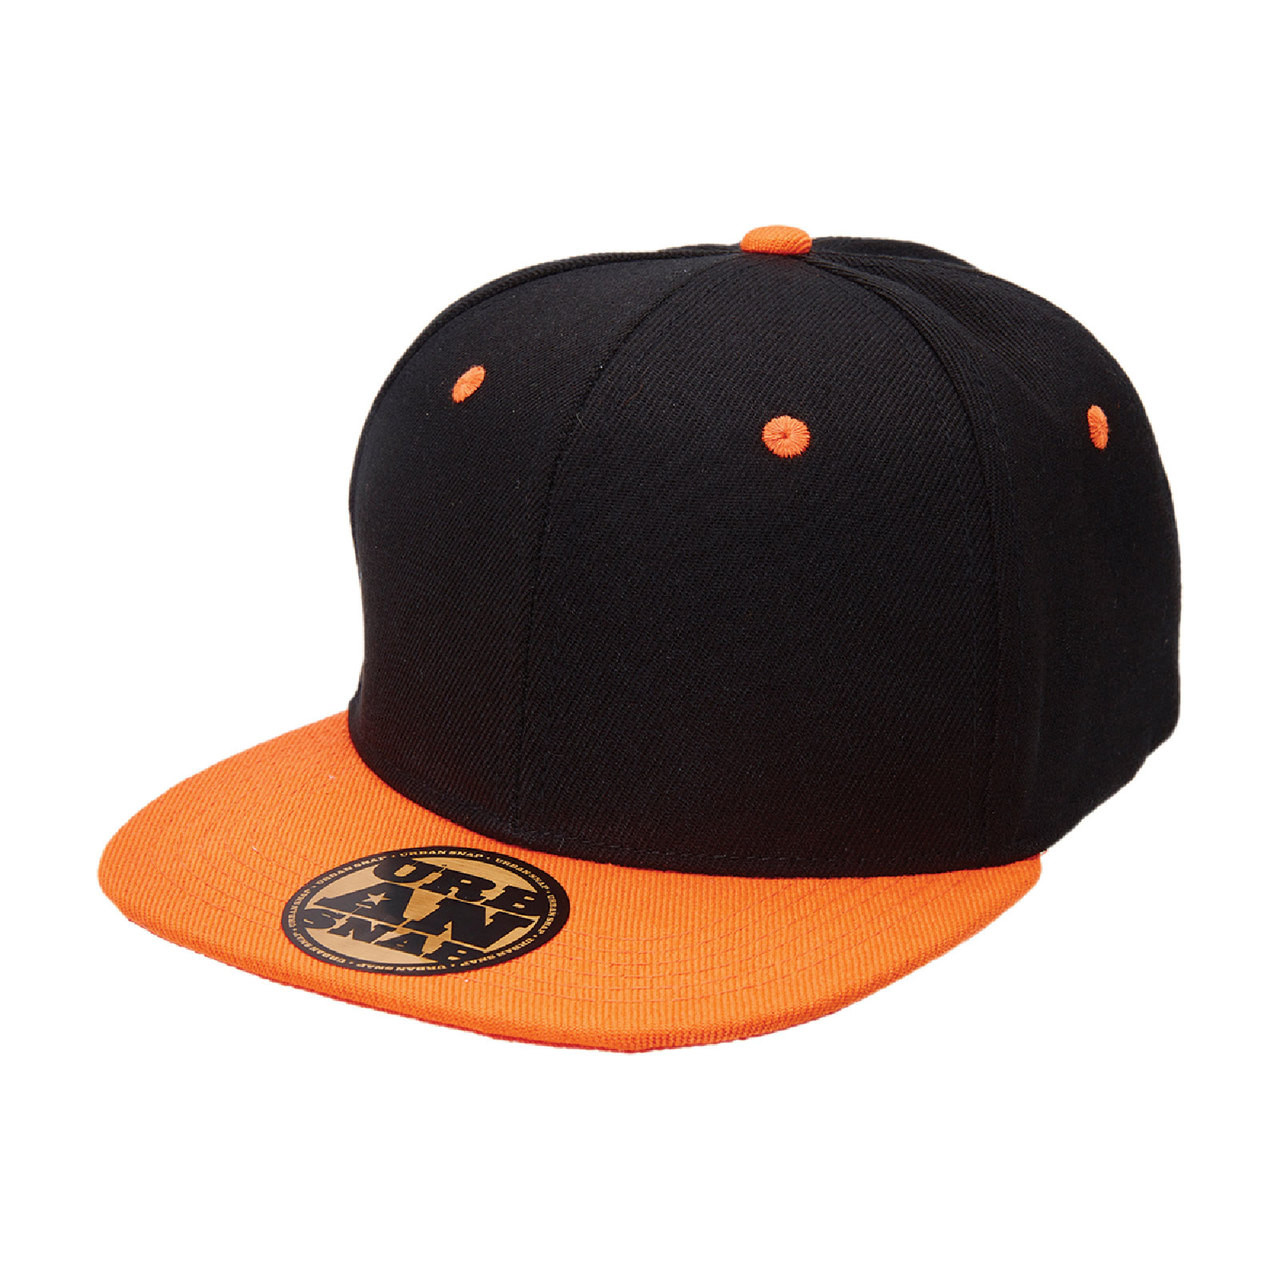 Buy Youth Kids Urban Snapback Wholesale Baseball Caps Online 2e8d50fc34f